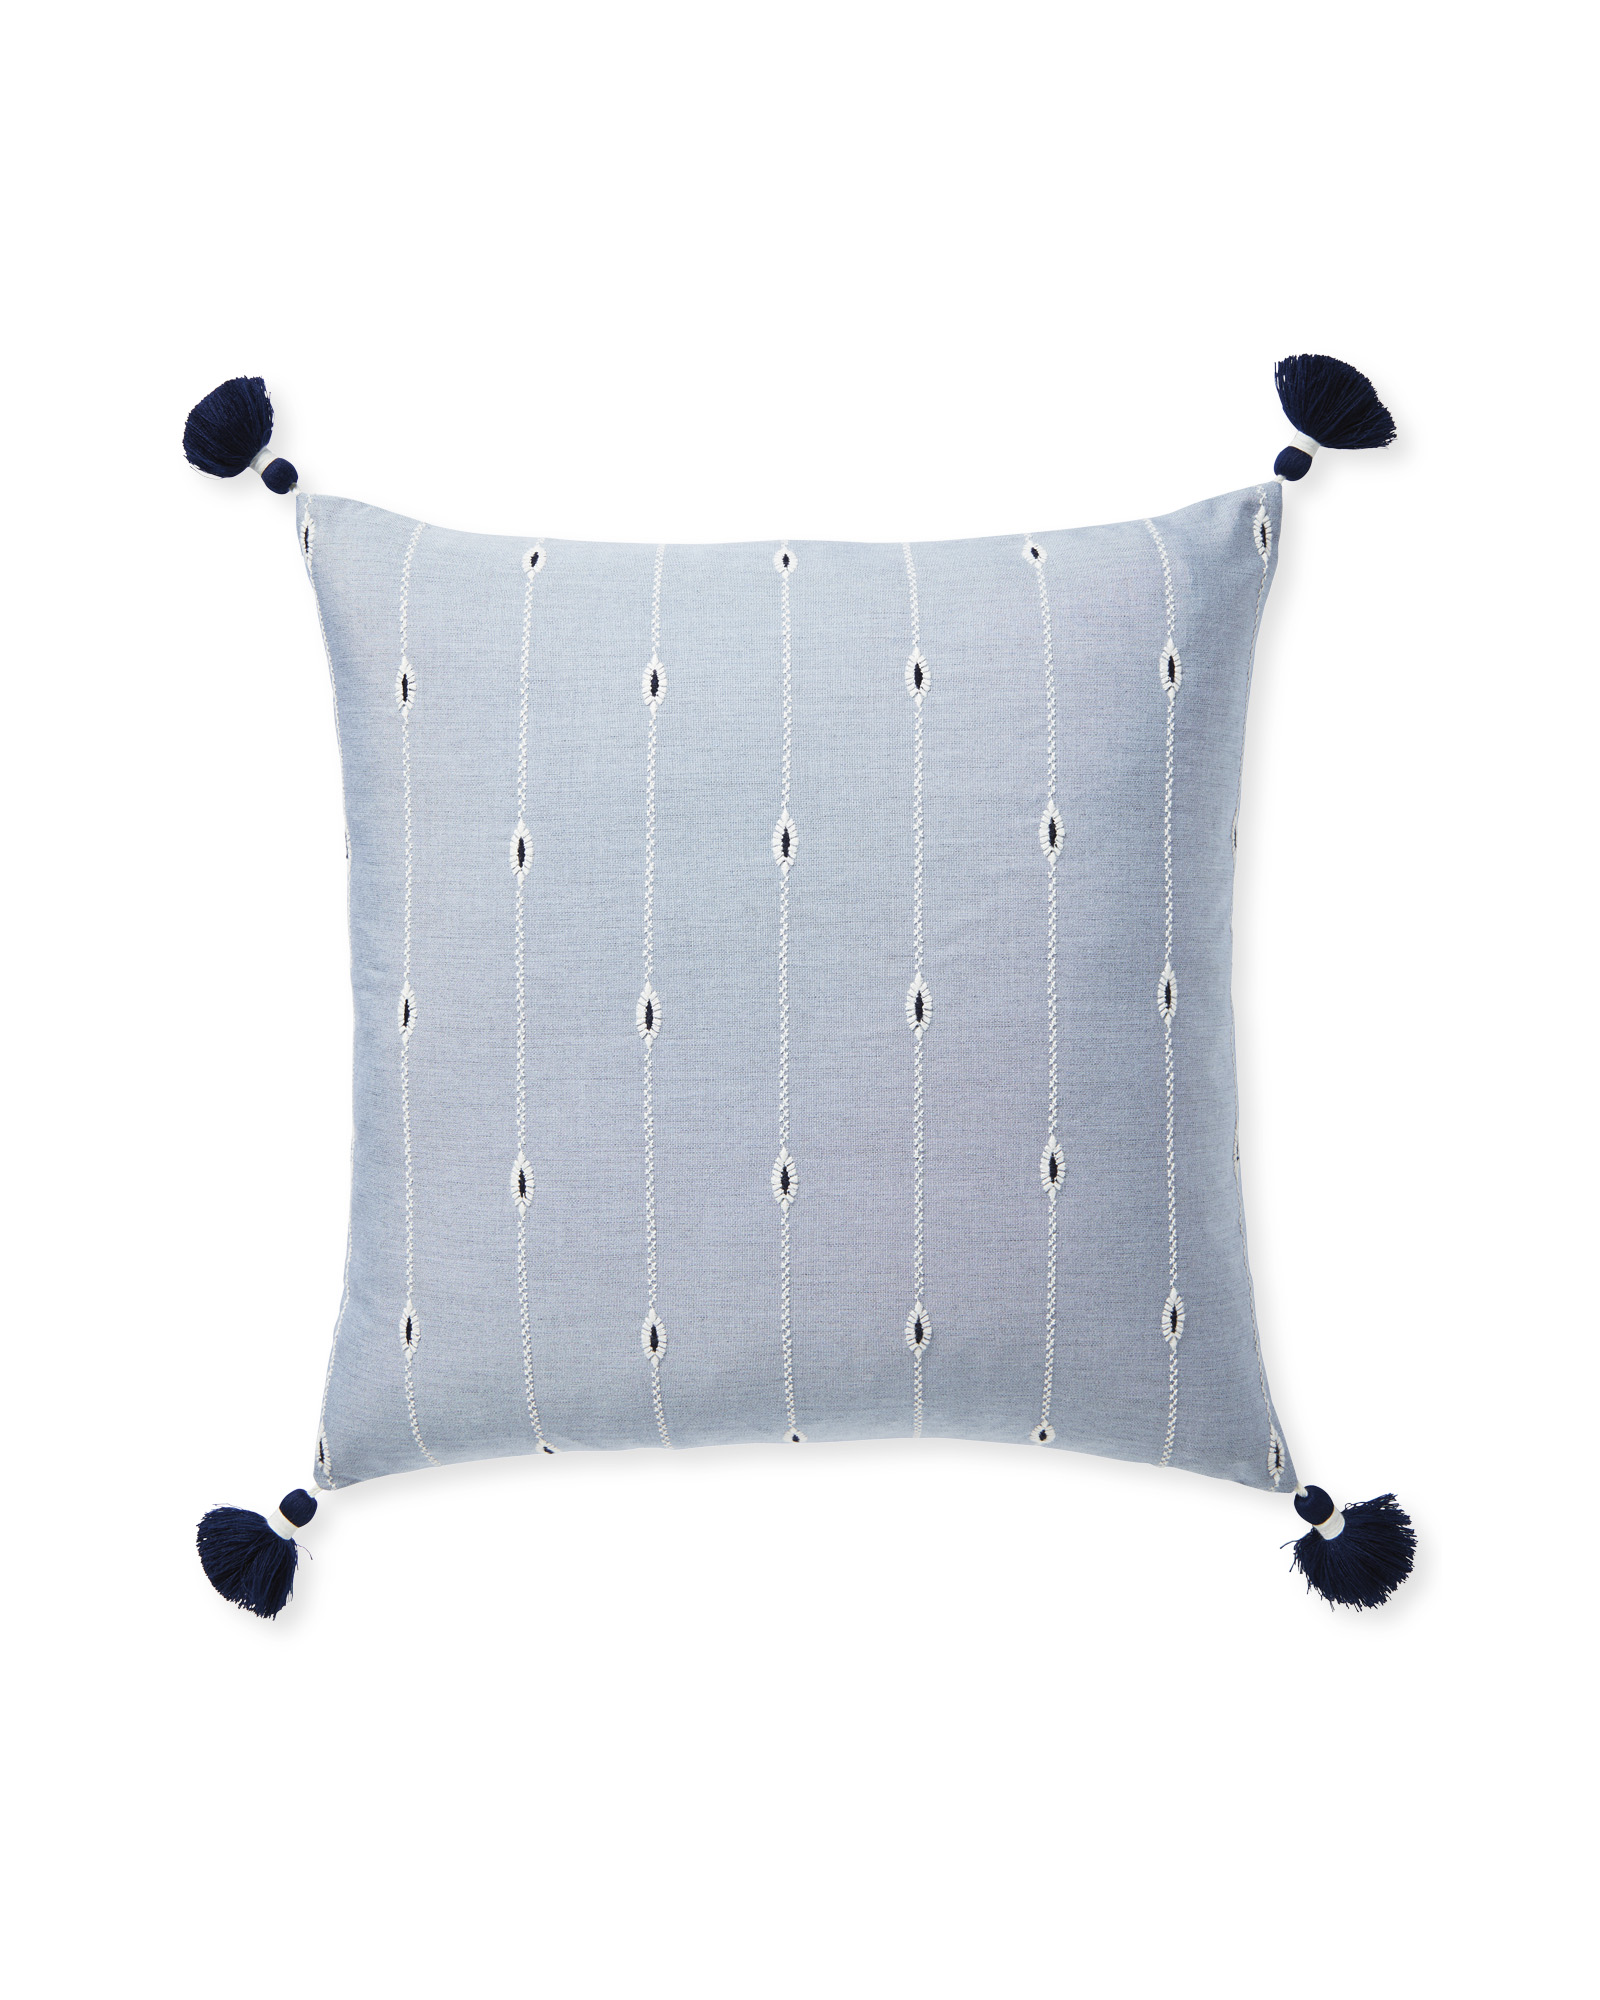 Rivoli Pillow Cover, Coastal Blue